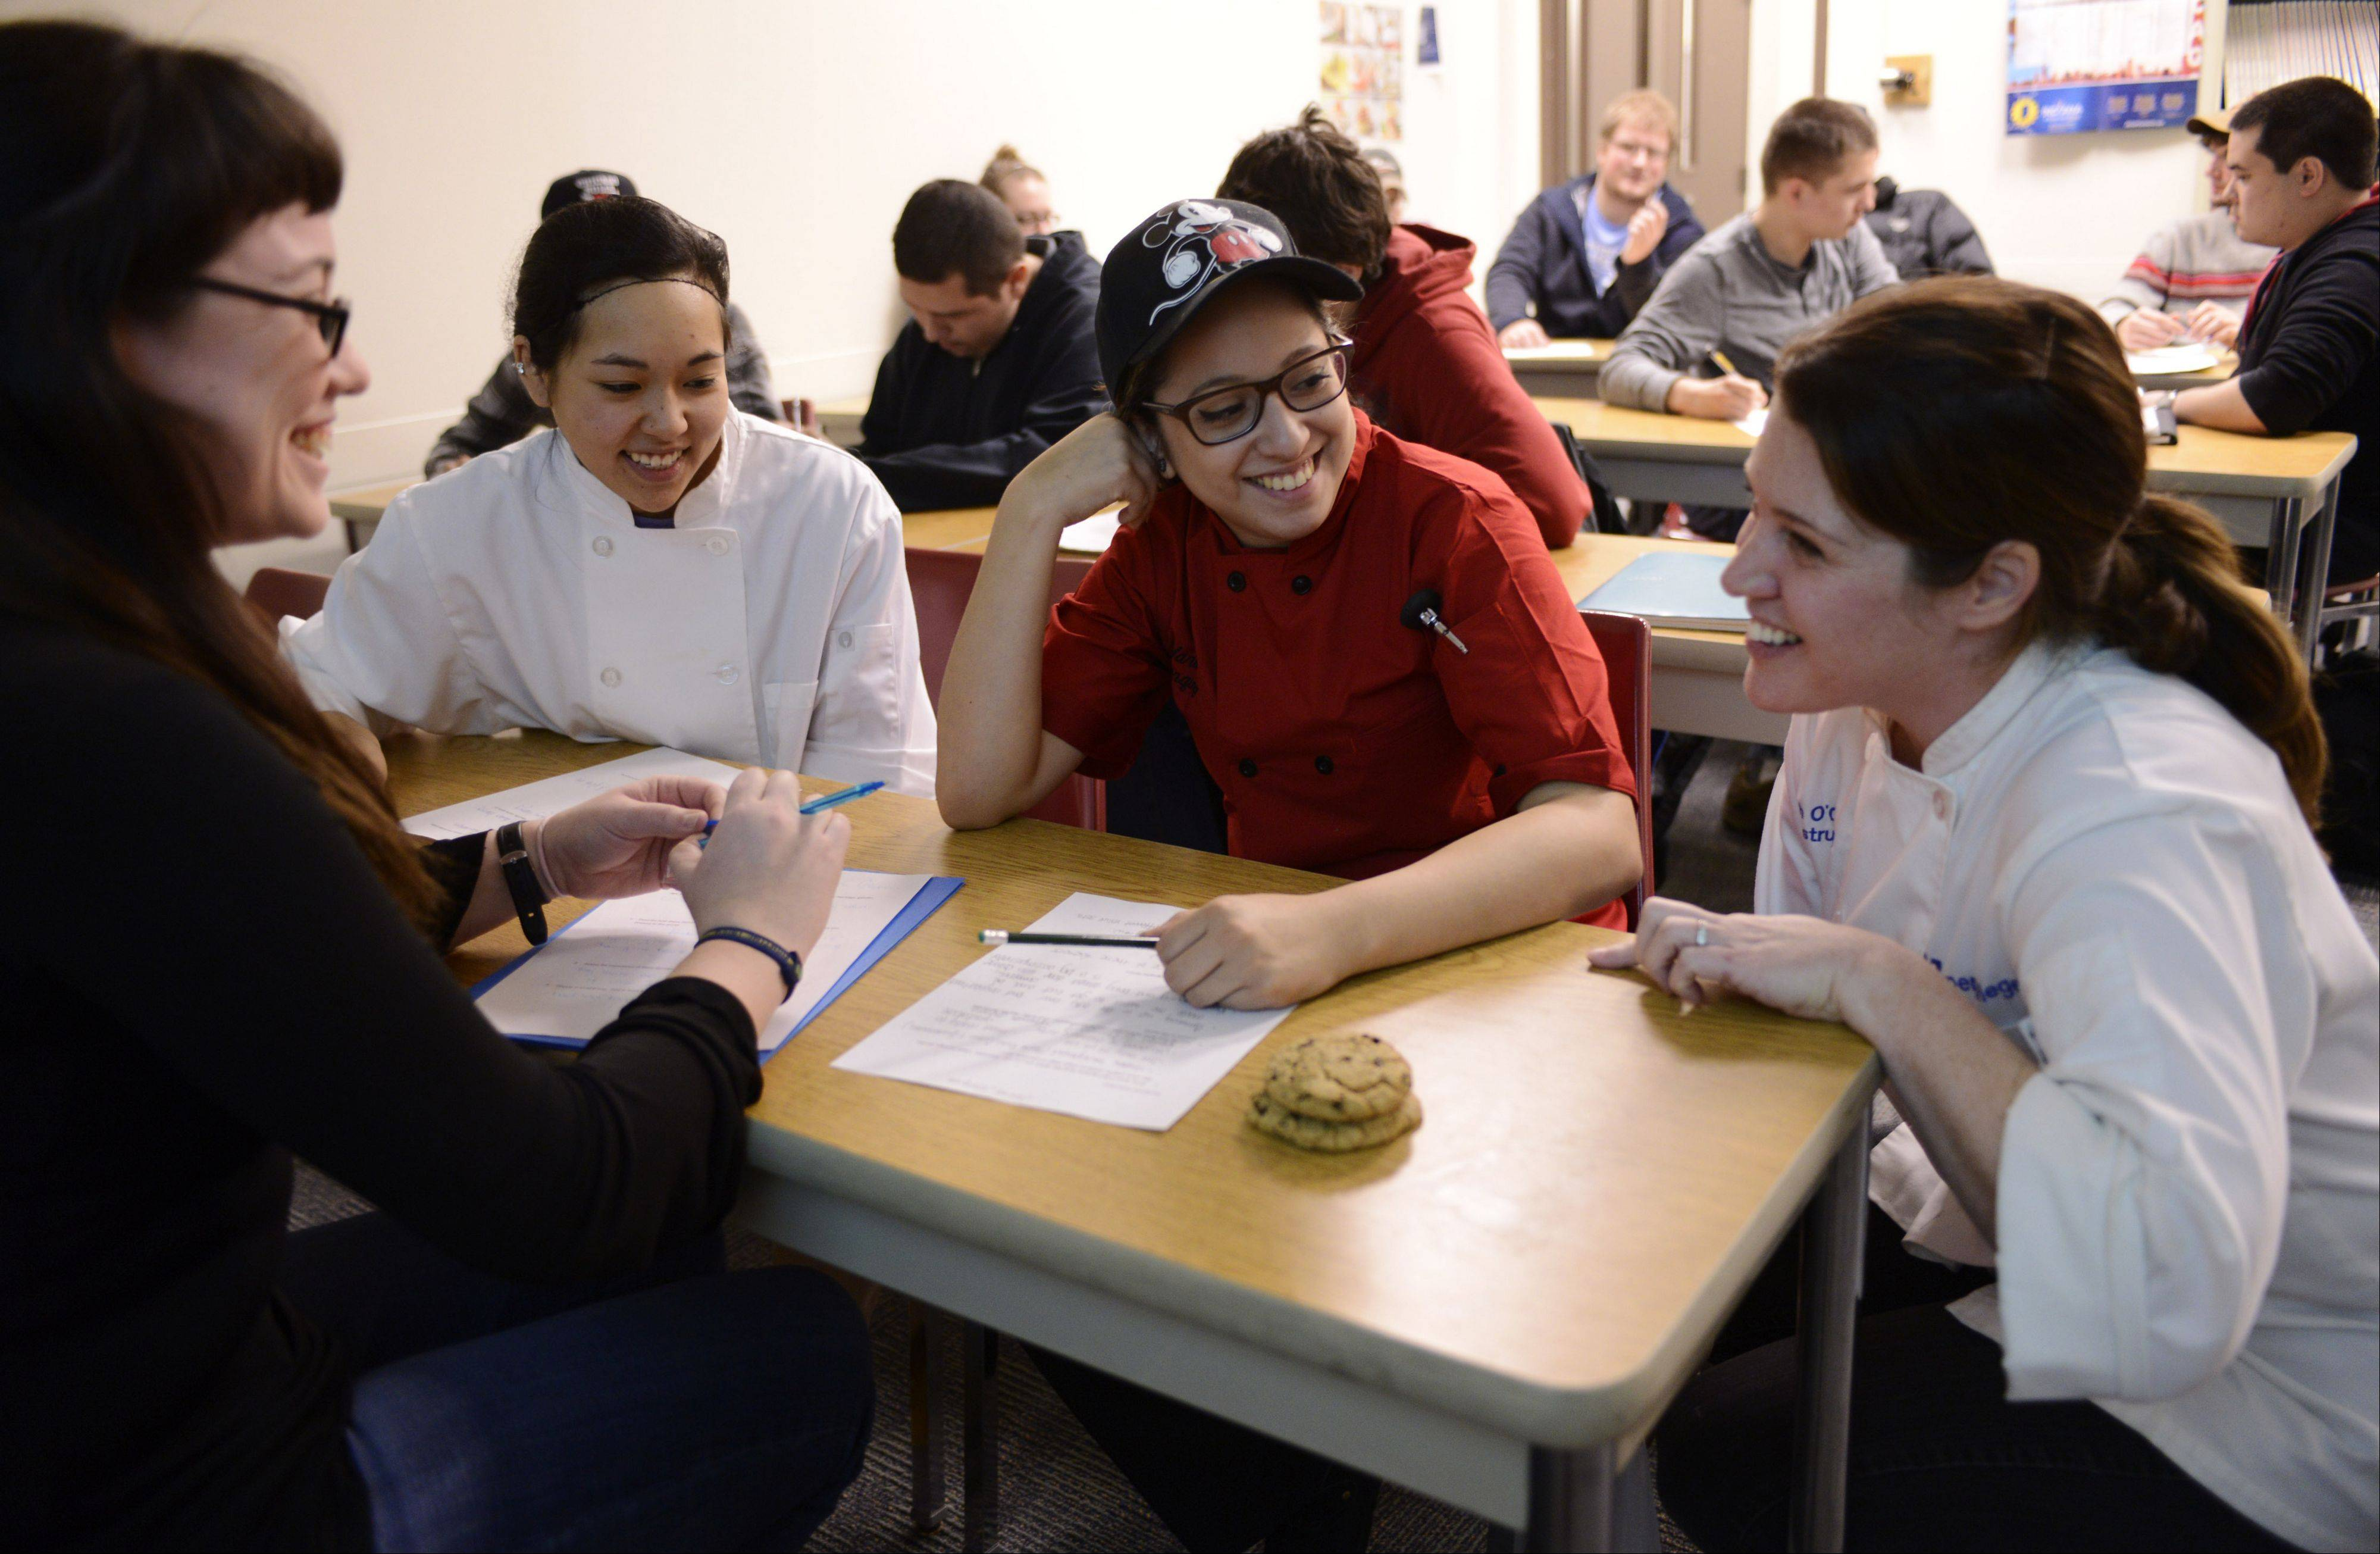 Dani Garcia of Streamwood, left, Julie ana Pak of Northbrook and Marisa Marquez of Arlington Heights talk with instructor Beth O'Connell in the classroom at Harper College in Palatine.